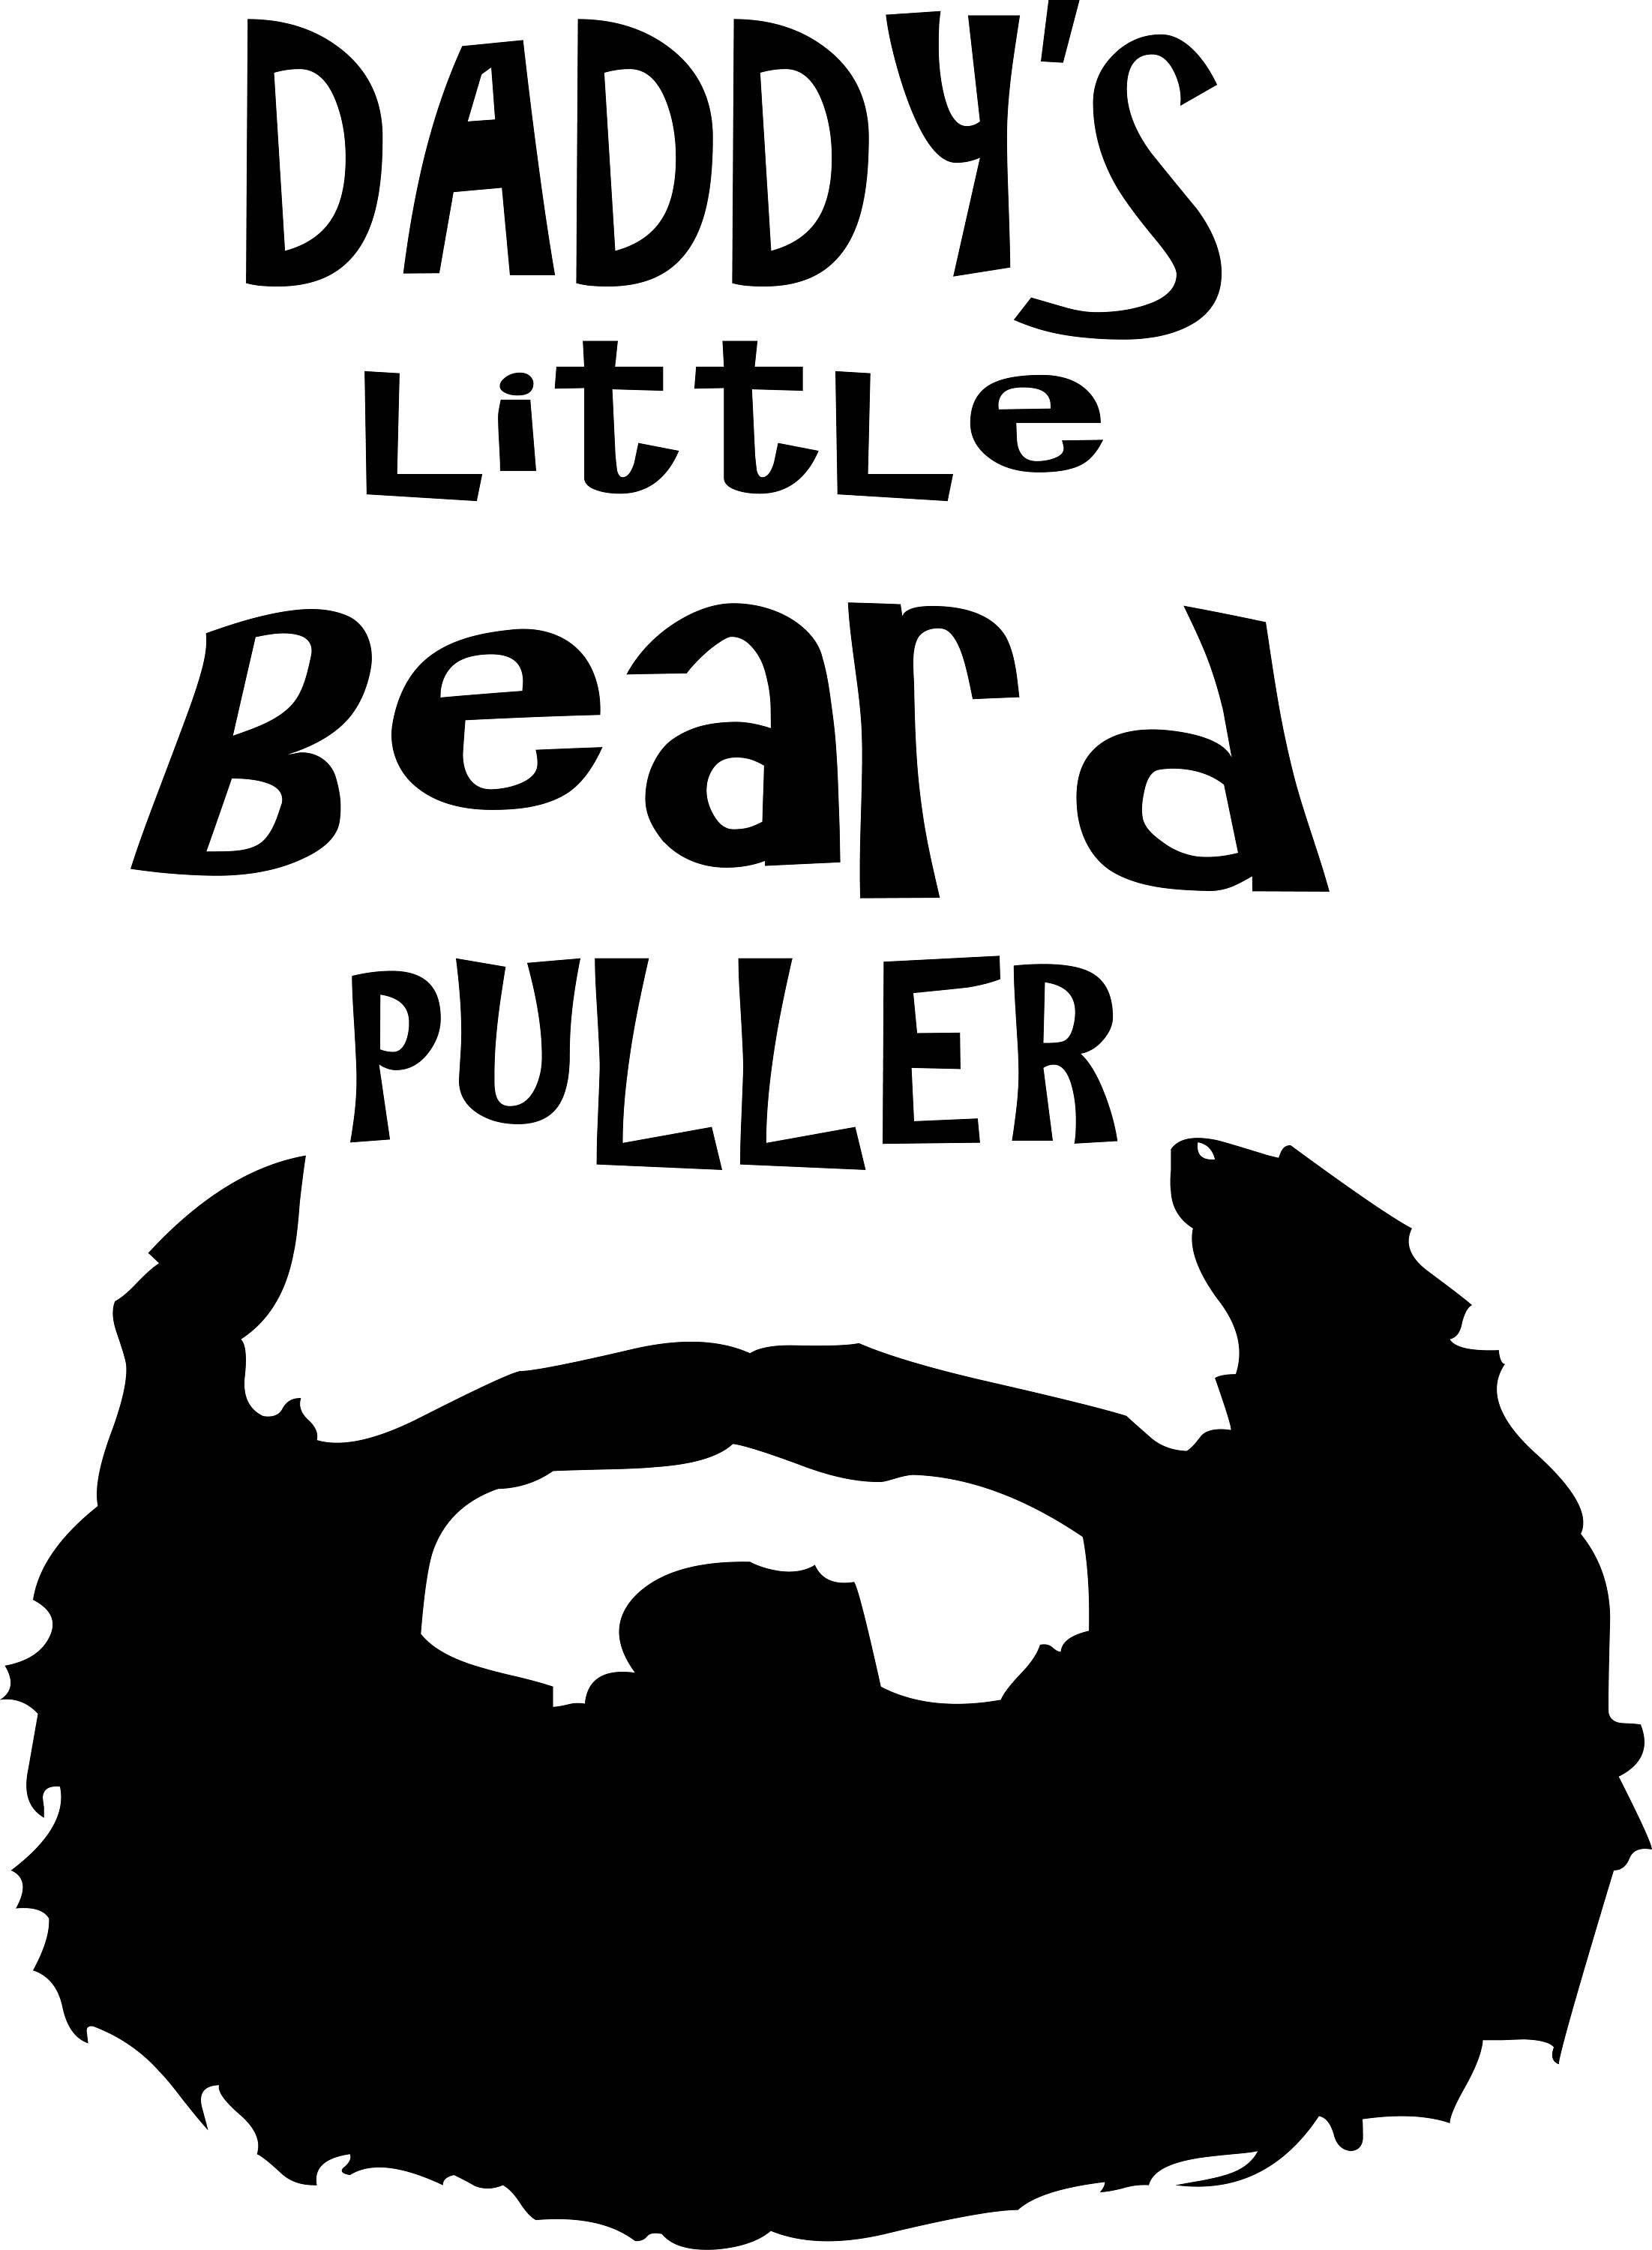 Daddy S Little Beard Puller Svg Digital Download Bearded Dad S Funny Svg By Langcreationsvinyl On Etsy Beard Dad Funny Svg Daddys Little